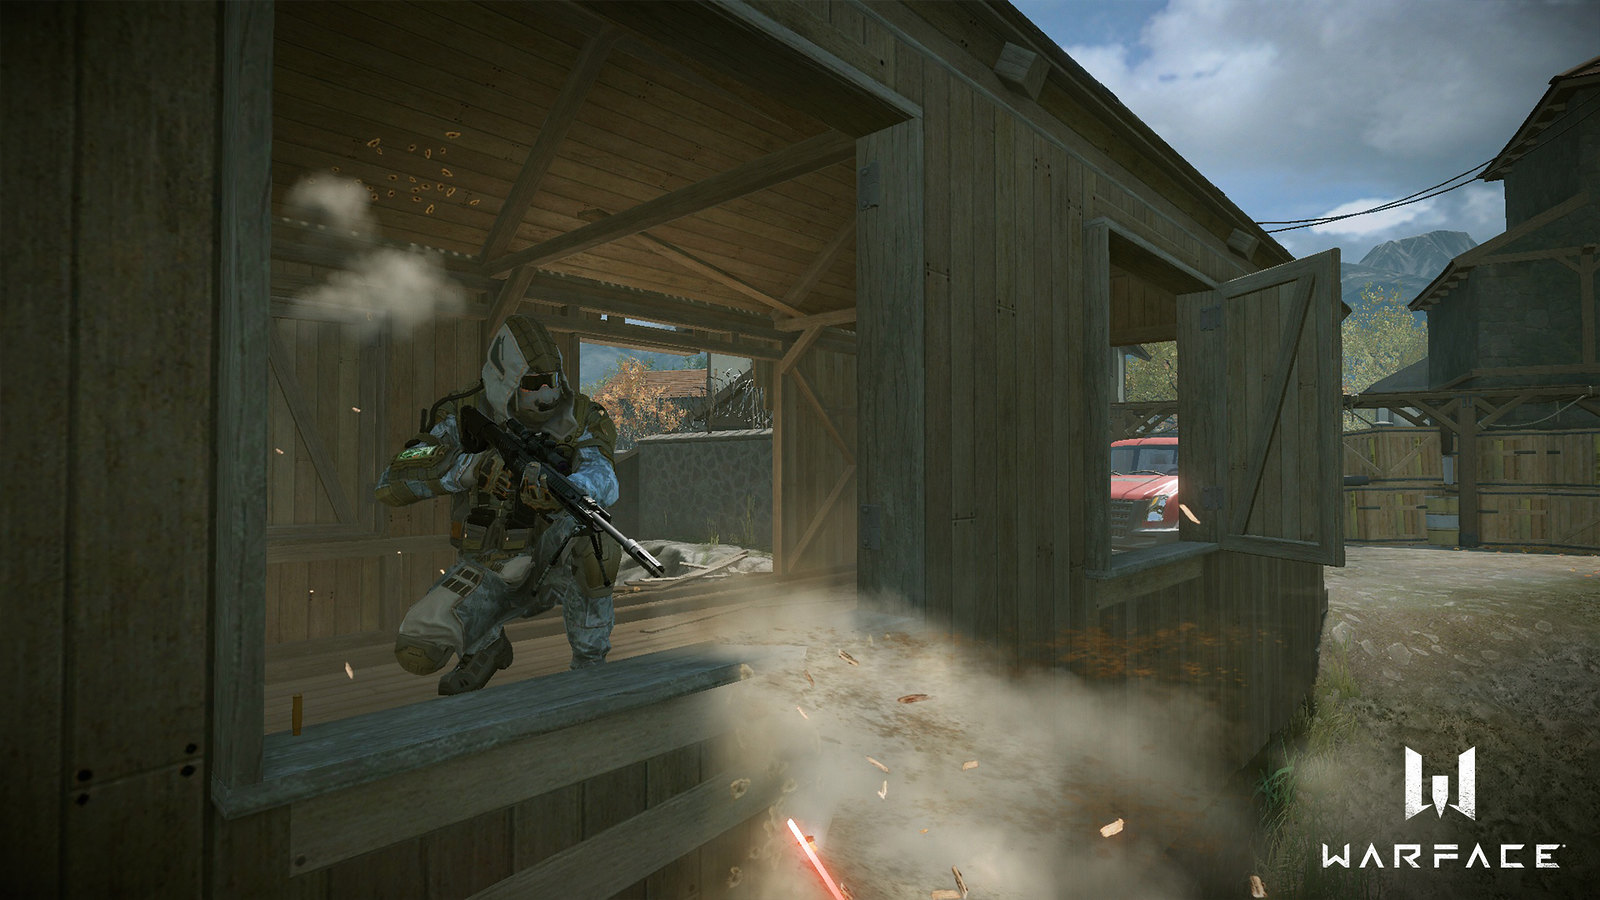 Warface Early Access Starts Today On PS4 – PlayStation Blog